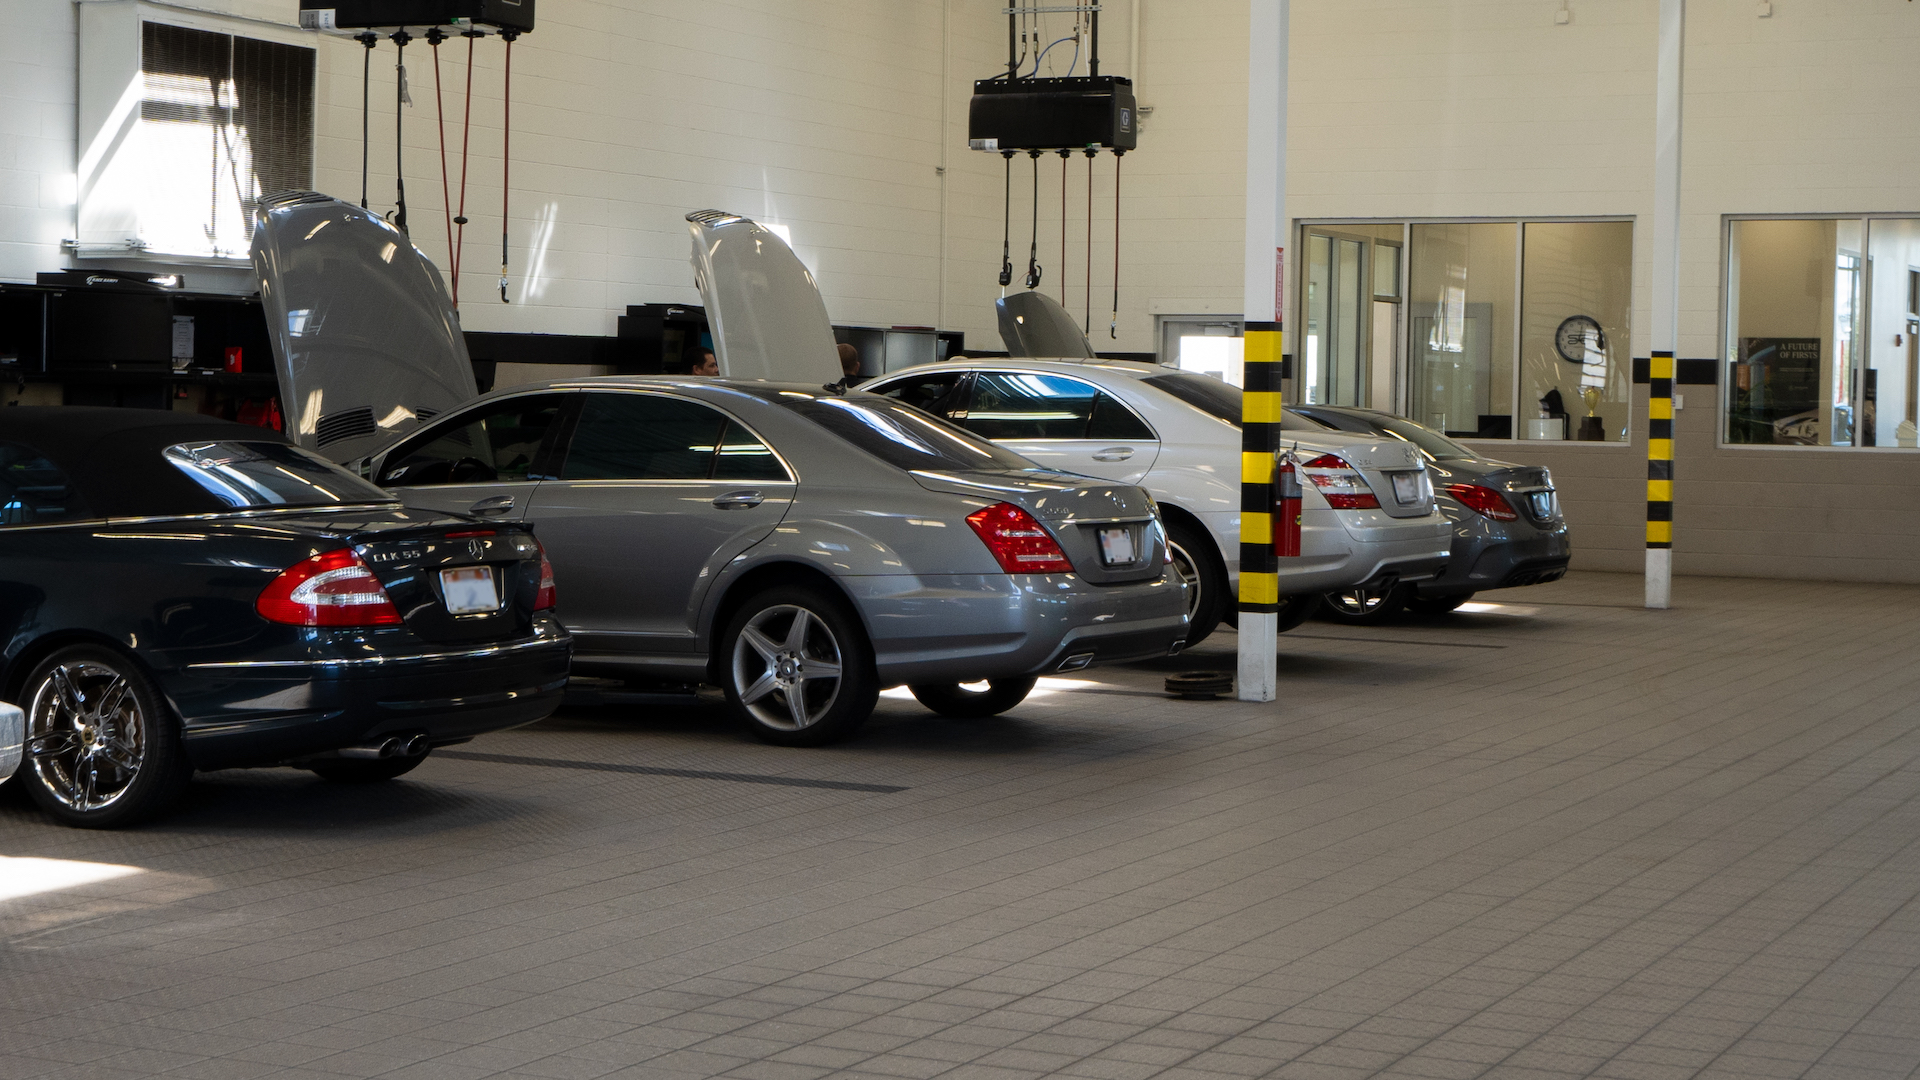 Mercedes-Benz of St. George Customer Waiting Room